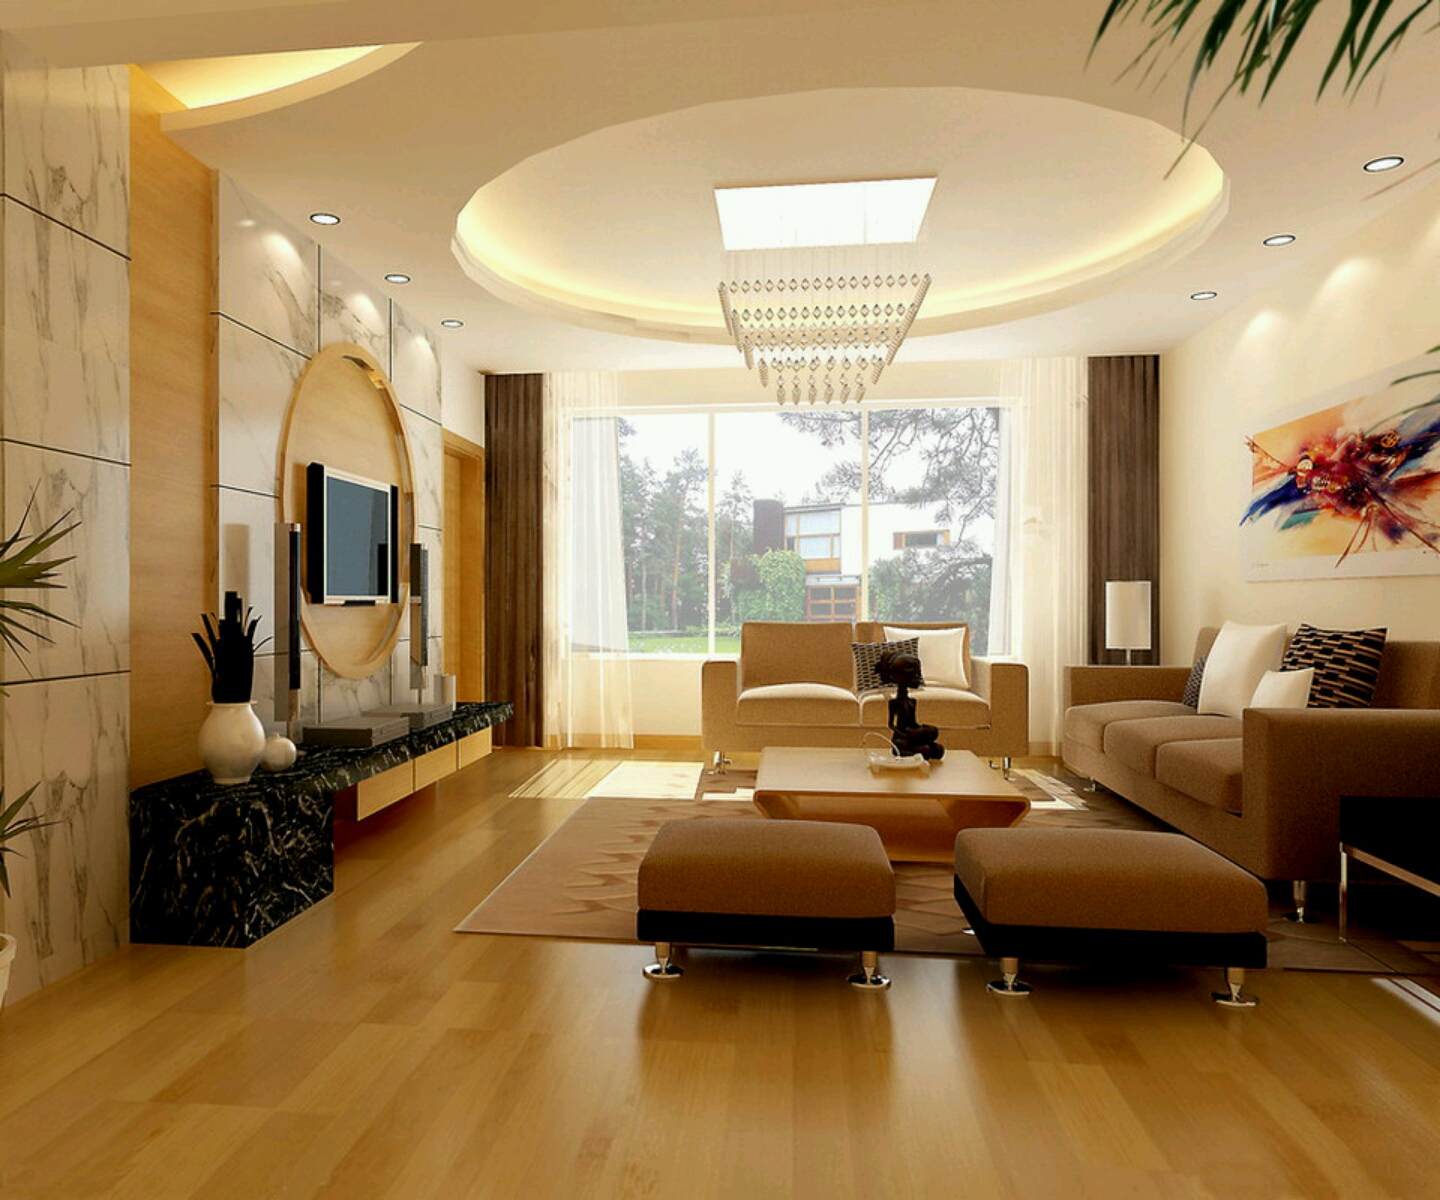 Modern interior decoration living rooms ceiling designs for New room design ideas